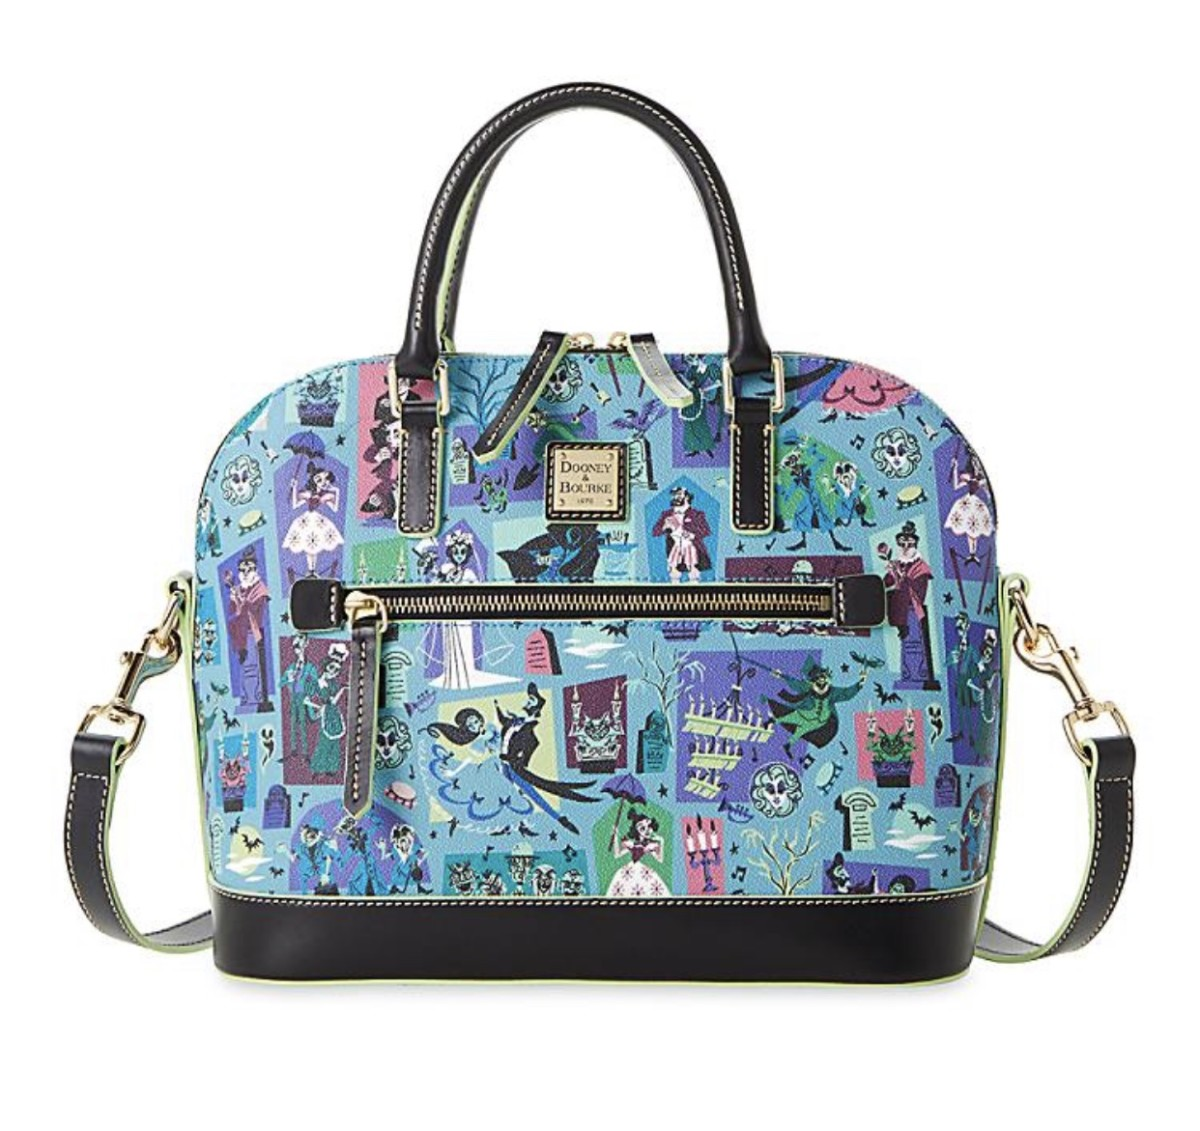 NEW! The Haunted Mansion by Dooney & Bourke 8